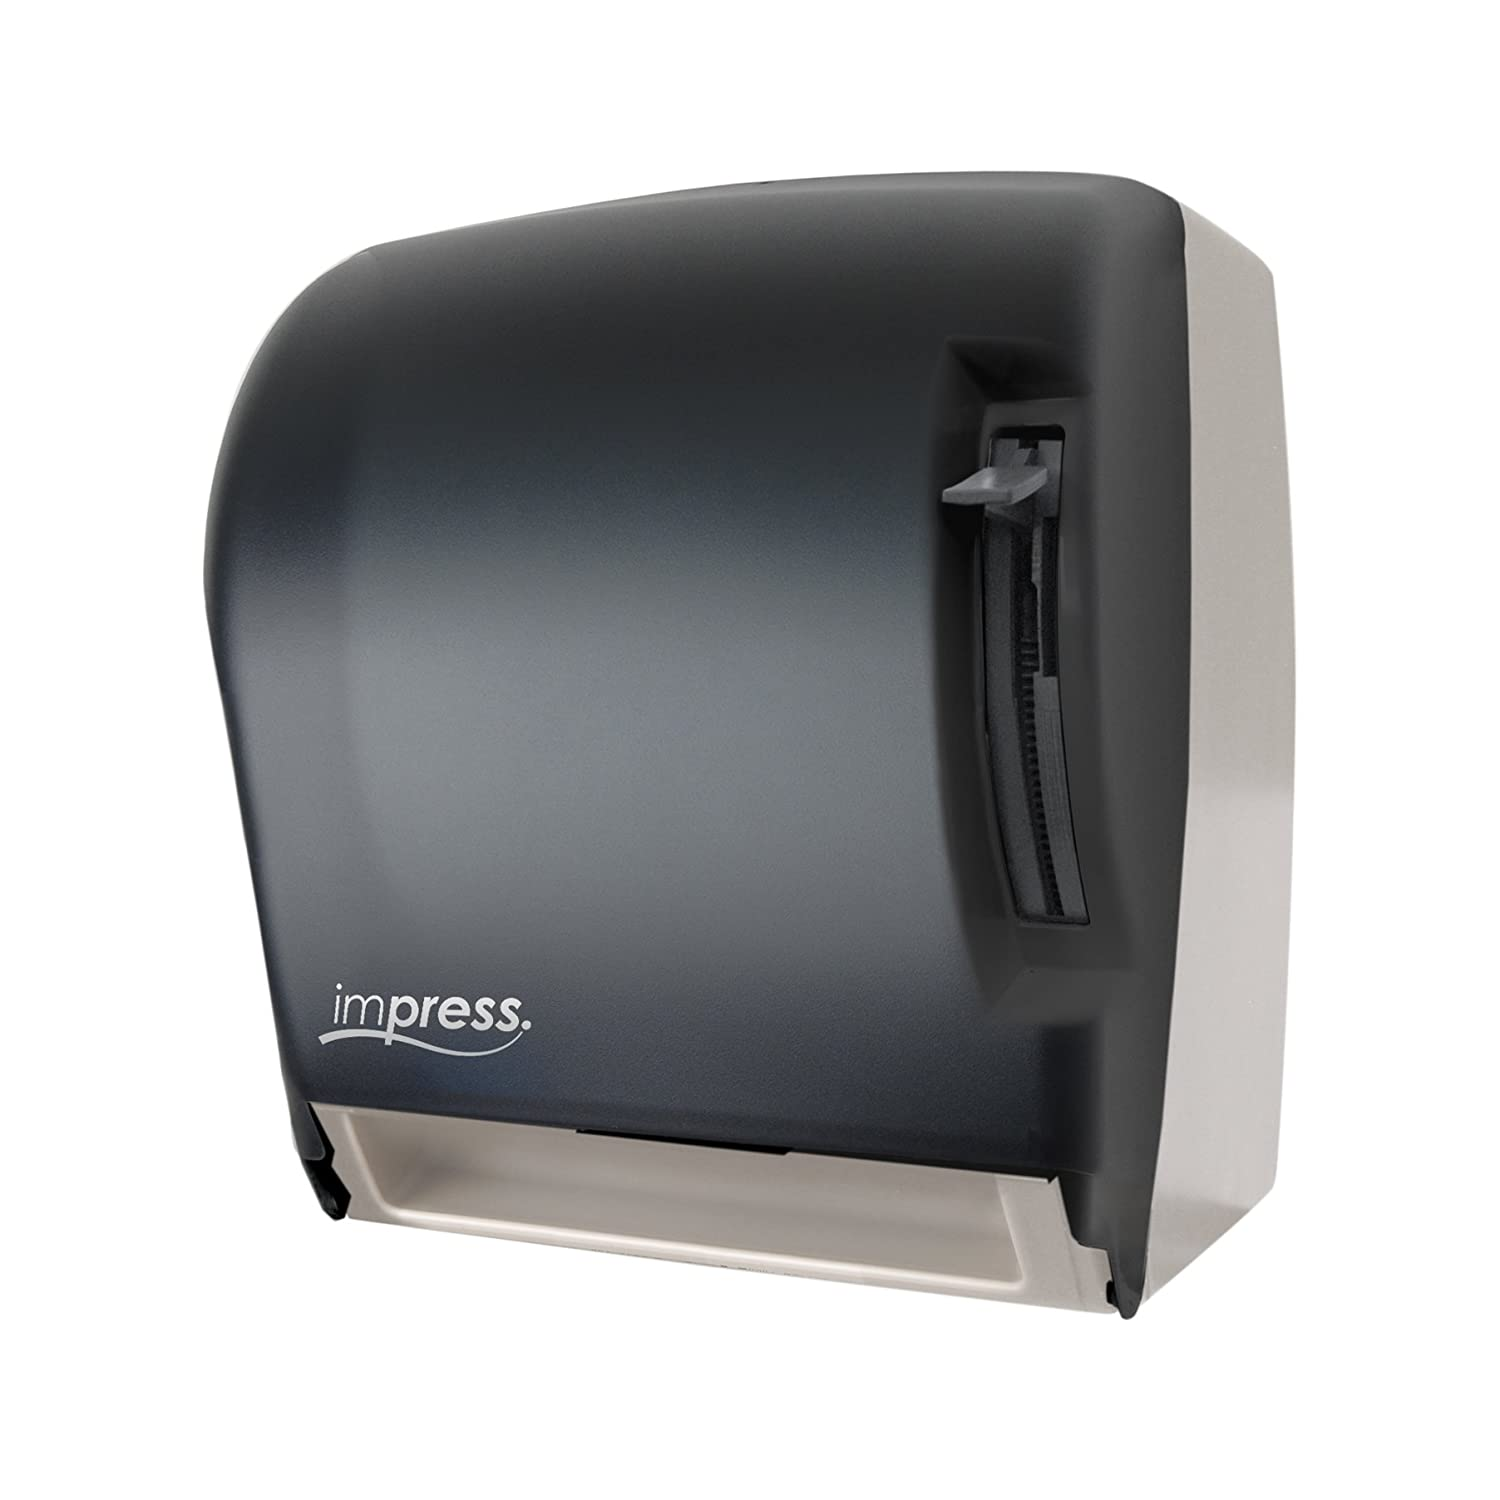 Palmer Fixture TD0220 01 Impress Lever Roll Towel Dispenser, Dark  Translucent: Amazon.com: Industrial U0026 Scientific